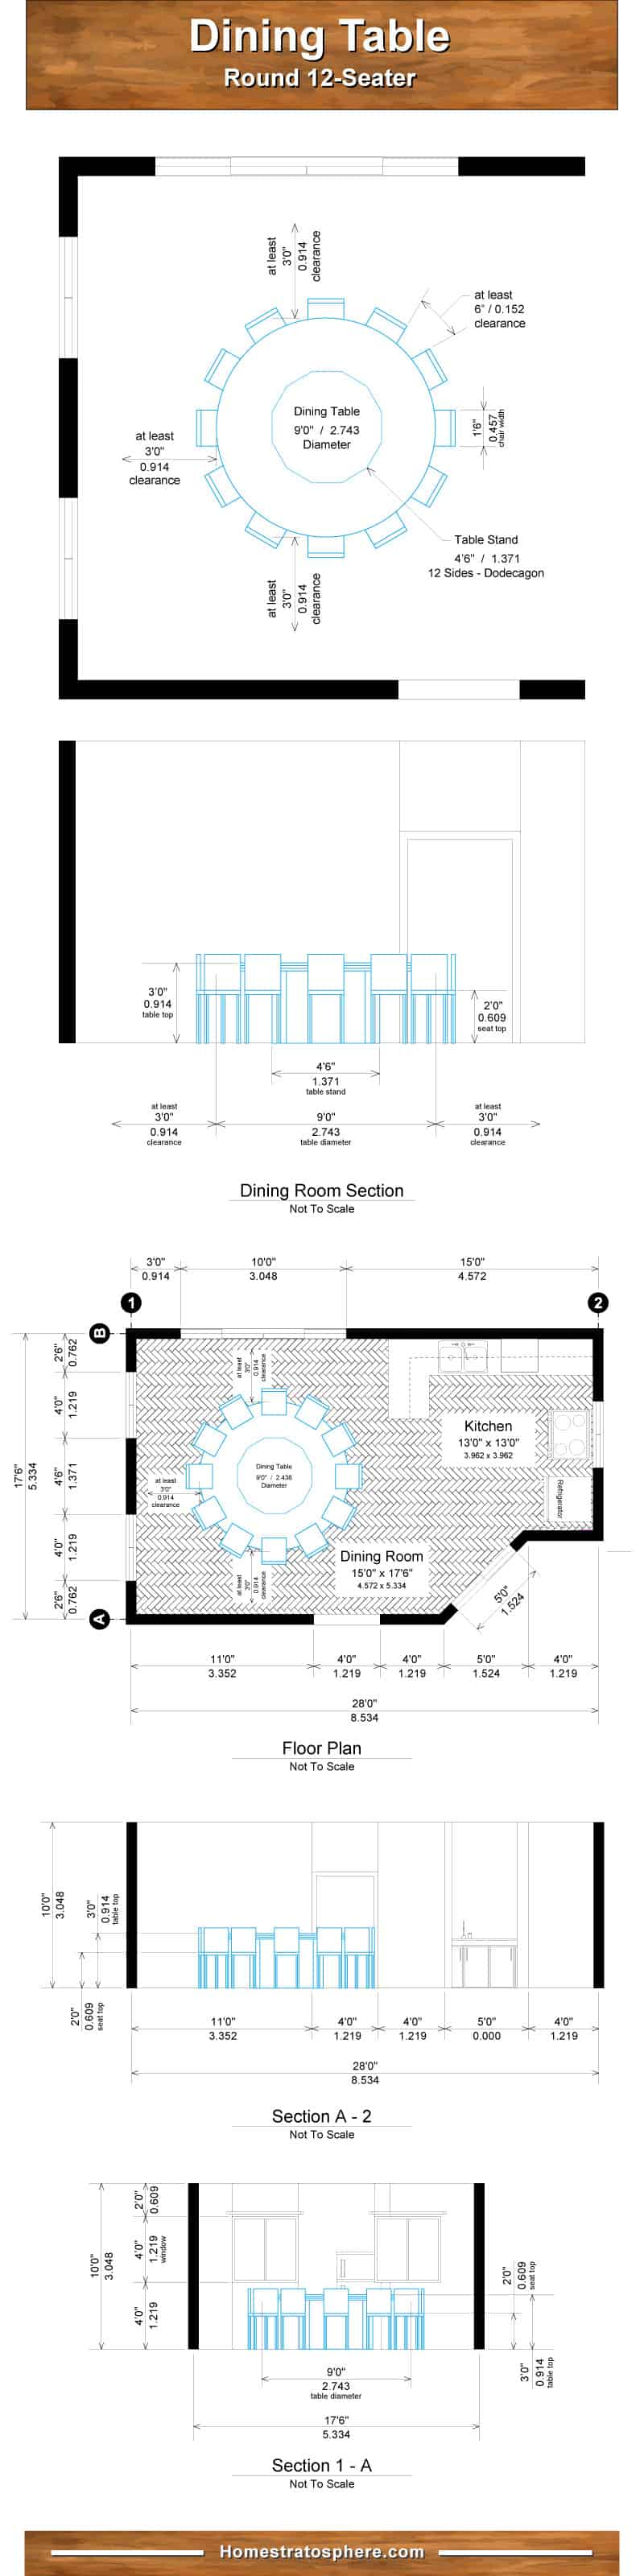 Round dining table dimensions chart for 12 people